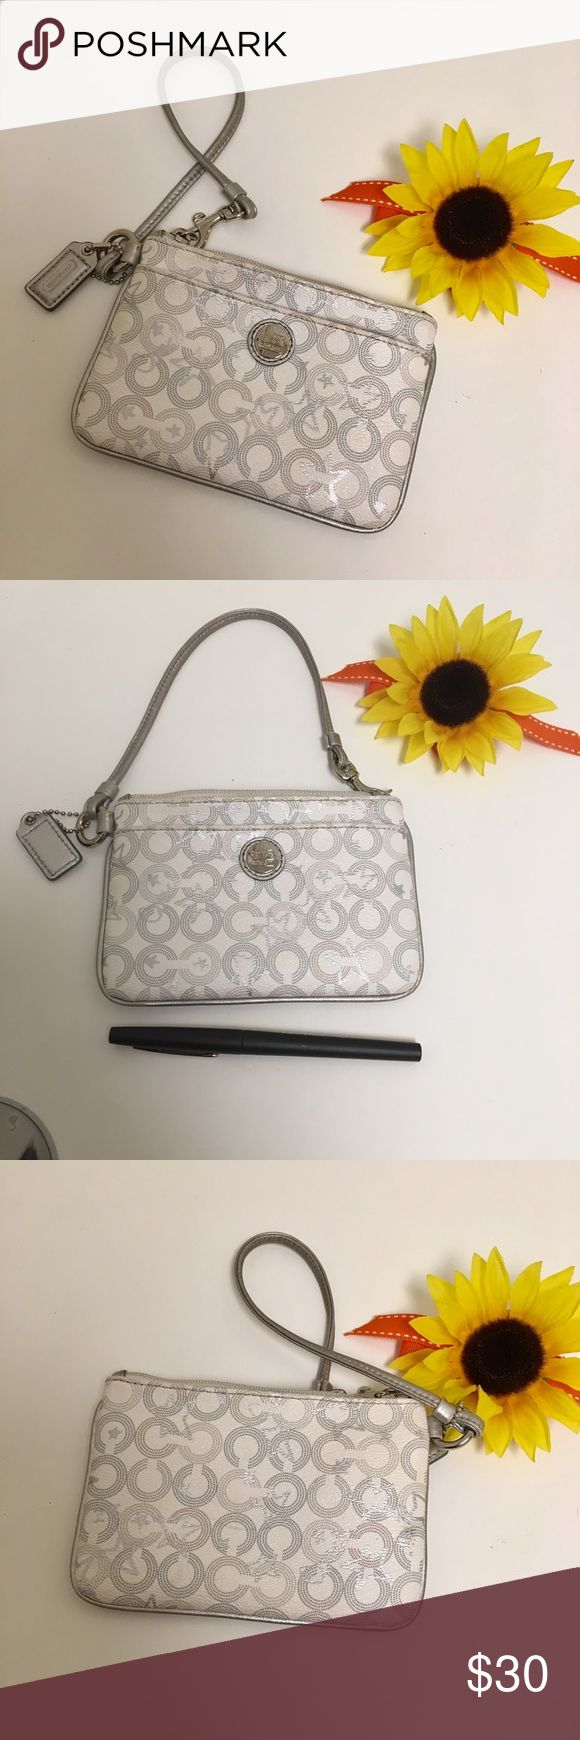 Coach wristlet Off-white Coach wristlet with silver stars and Cs. Has outside pocket.  EUC.  Lining is satin grey.  Great for cash, ID, lipstick! Coach Bags Clutches & Wristlets